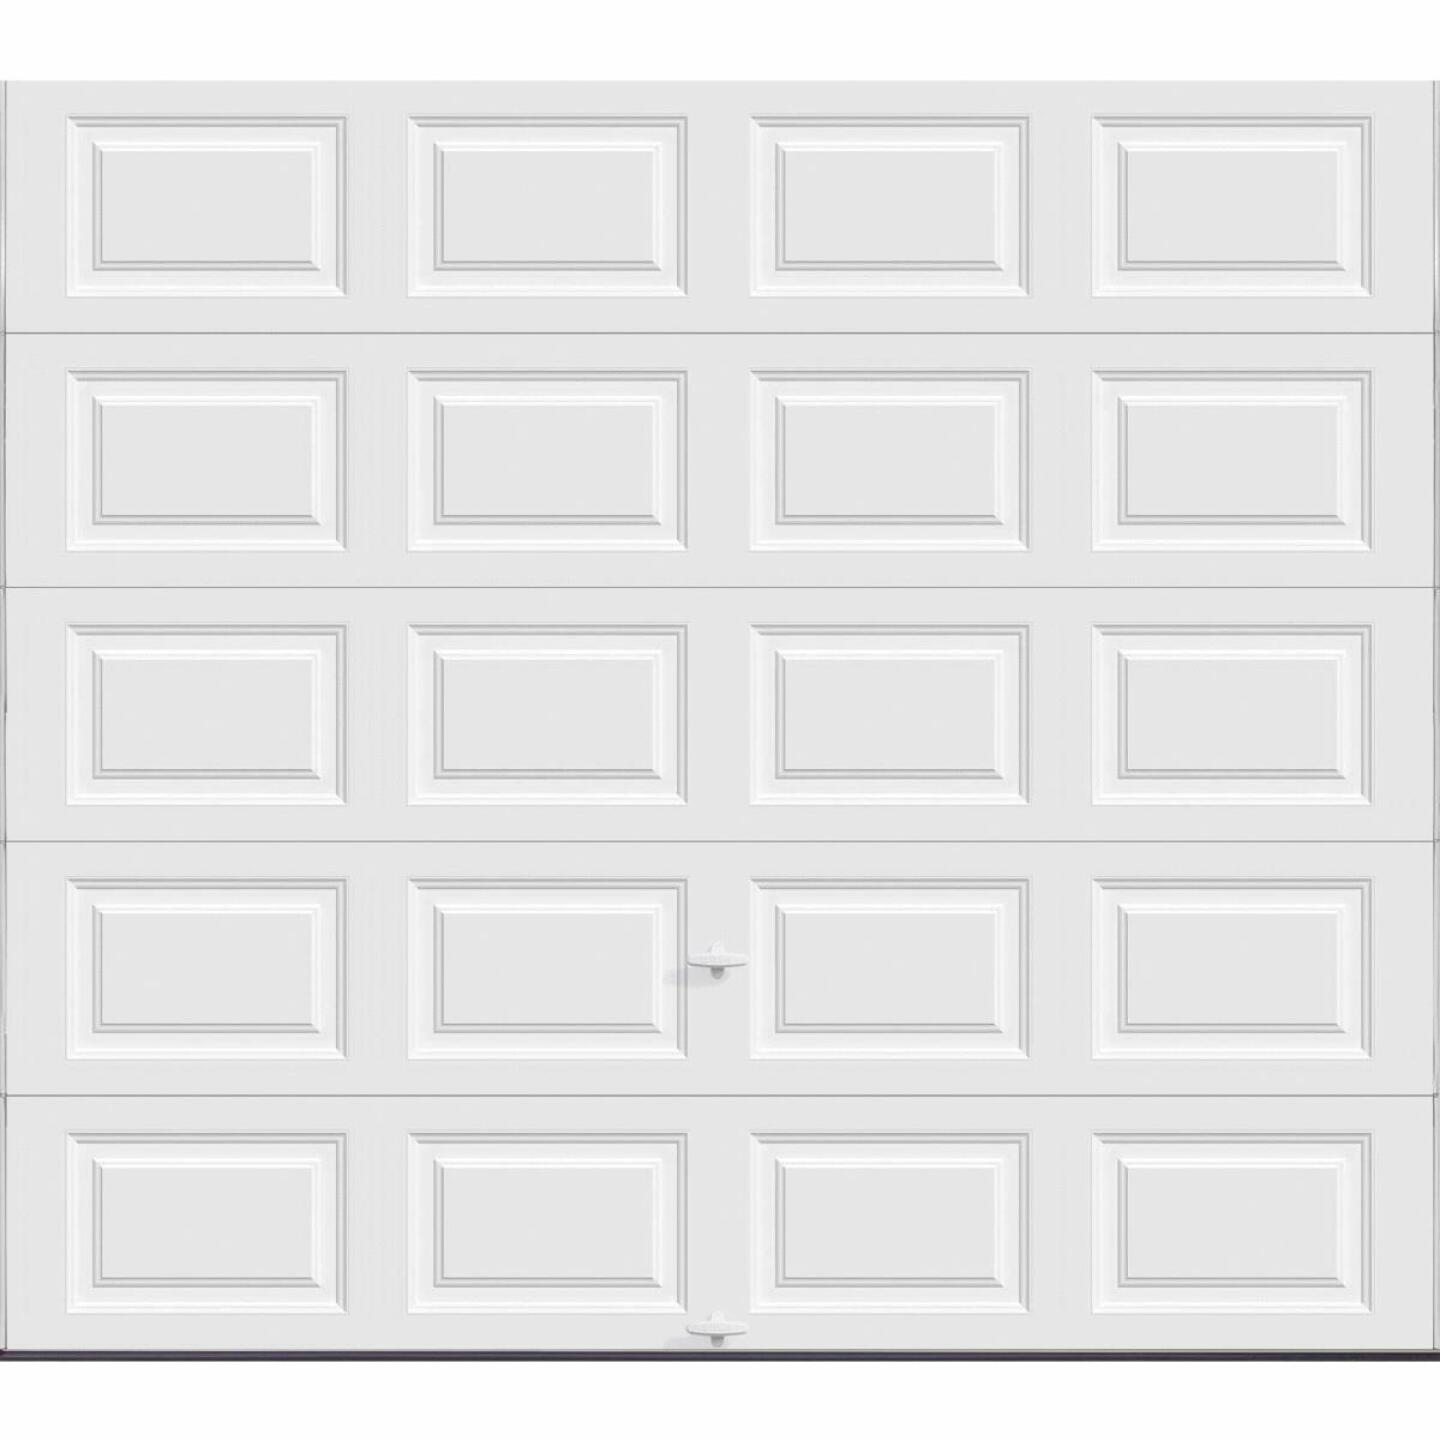 Holmes Gold Series 9 Ft. W x 8 Ft. H White Insulated Steel Garage Door w/EZ-Set Torsion Spring Image 1